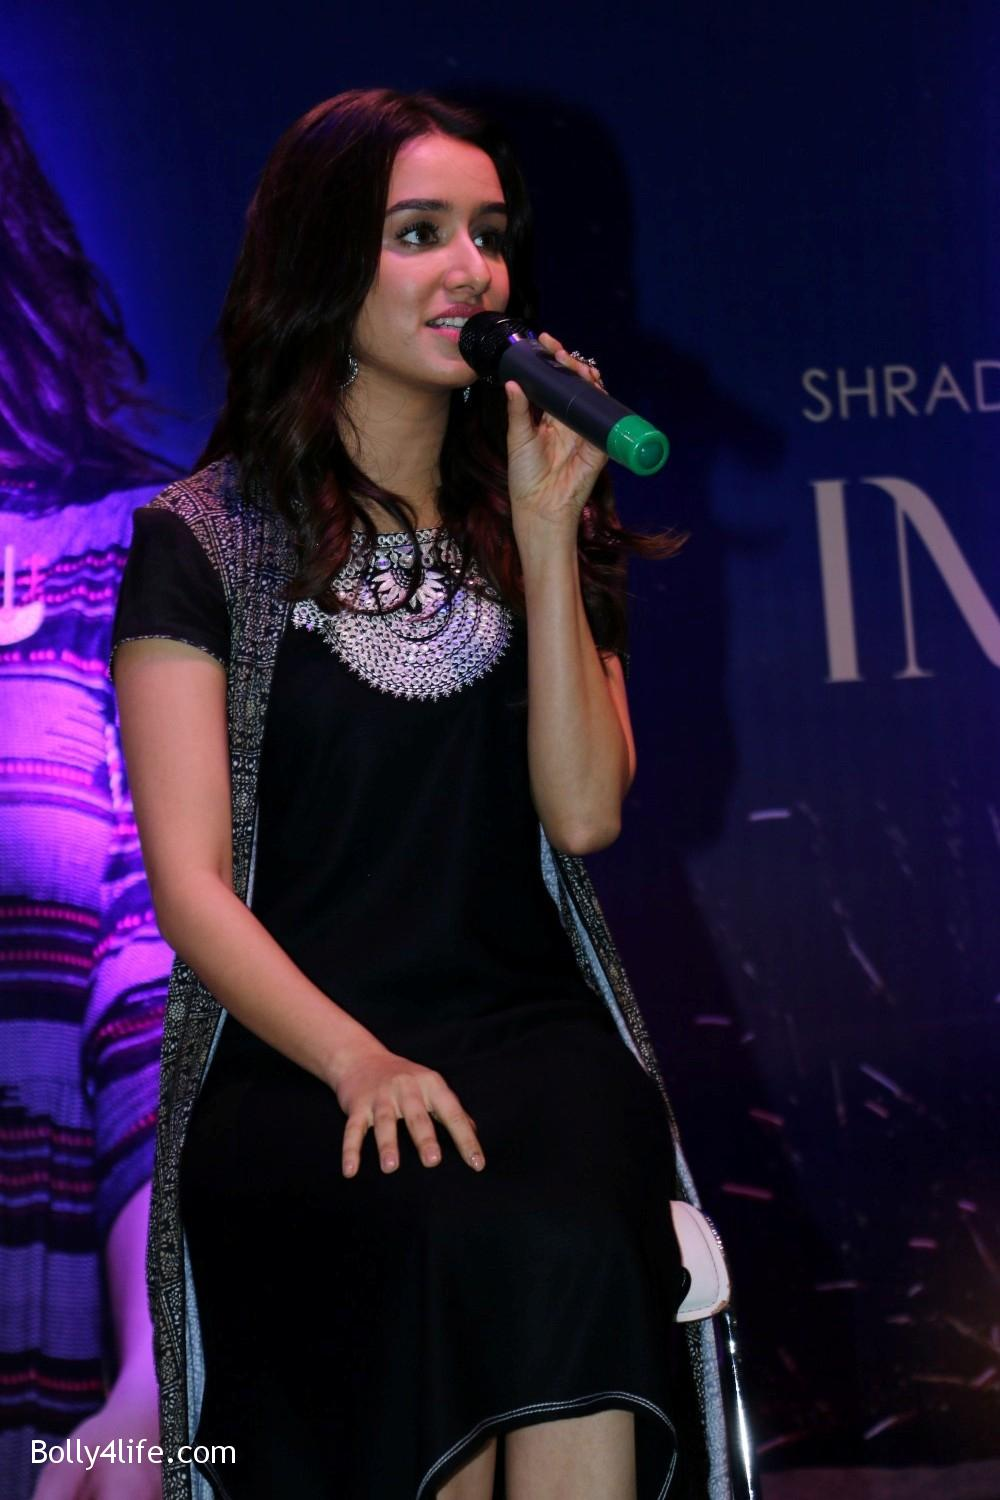 Shraddha-Kapoor-during-the-Enthnic-Wear-store-launch-11.jpg